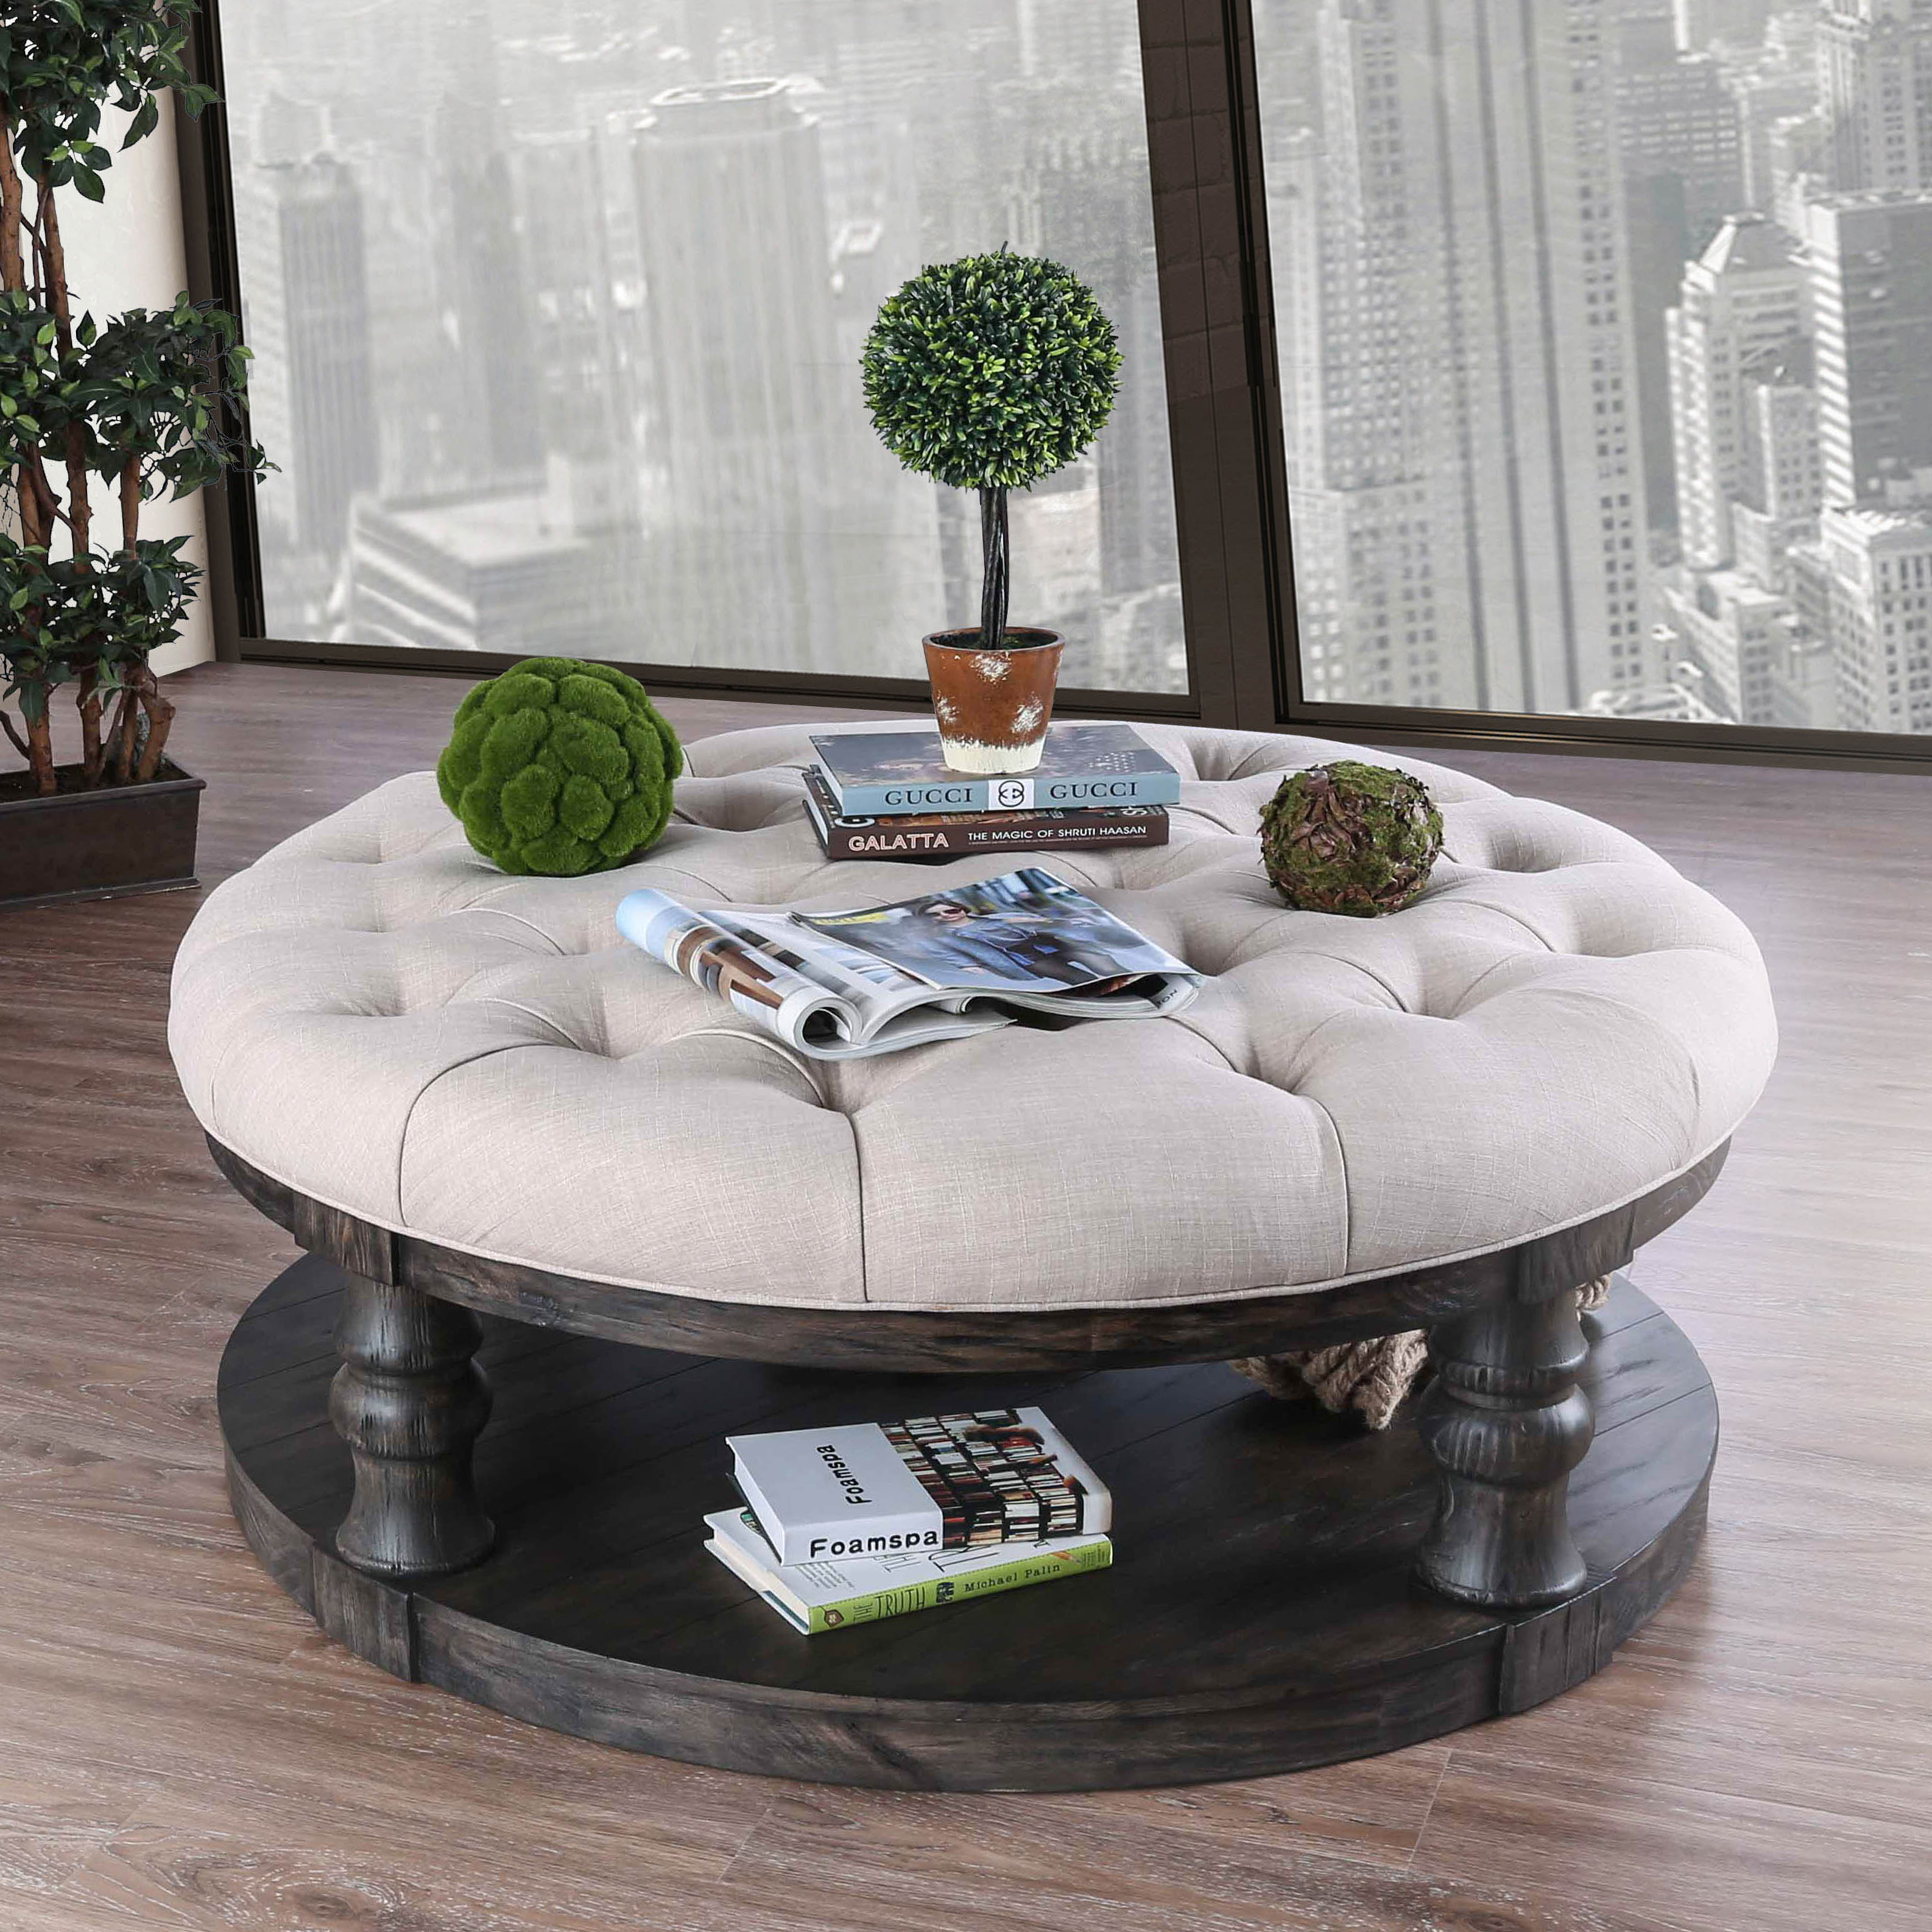 Furniture of America Tanenbaum Rustic Antique Gray Round Ottoman Coffee Table